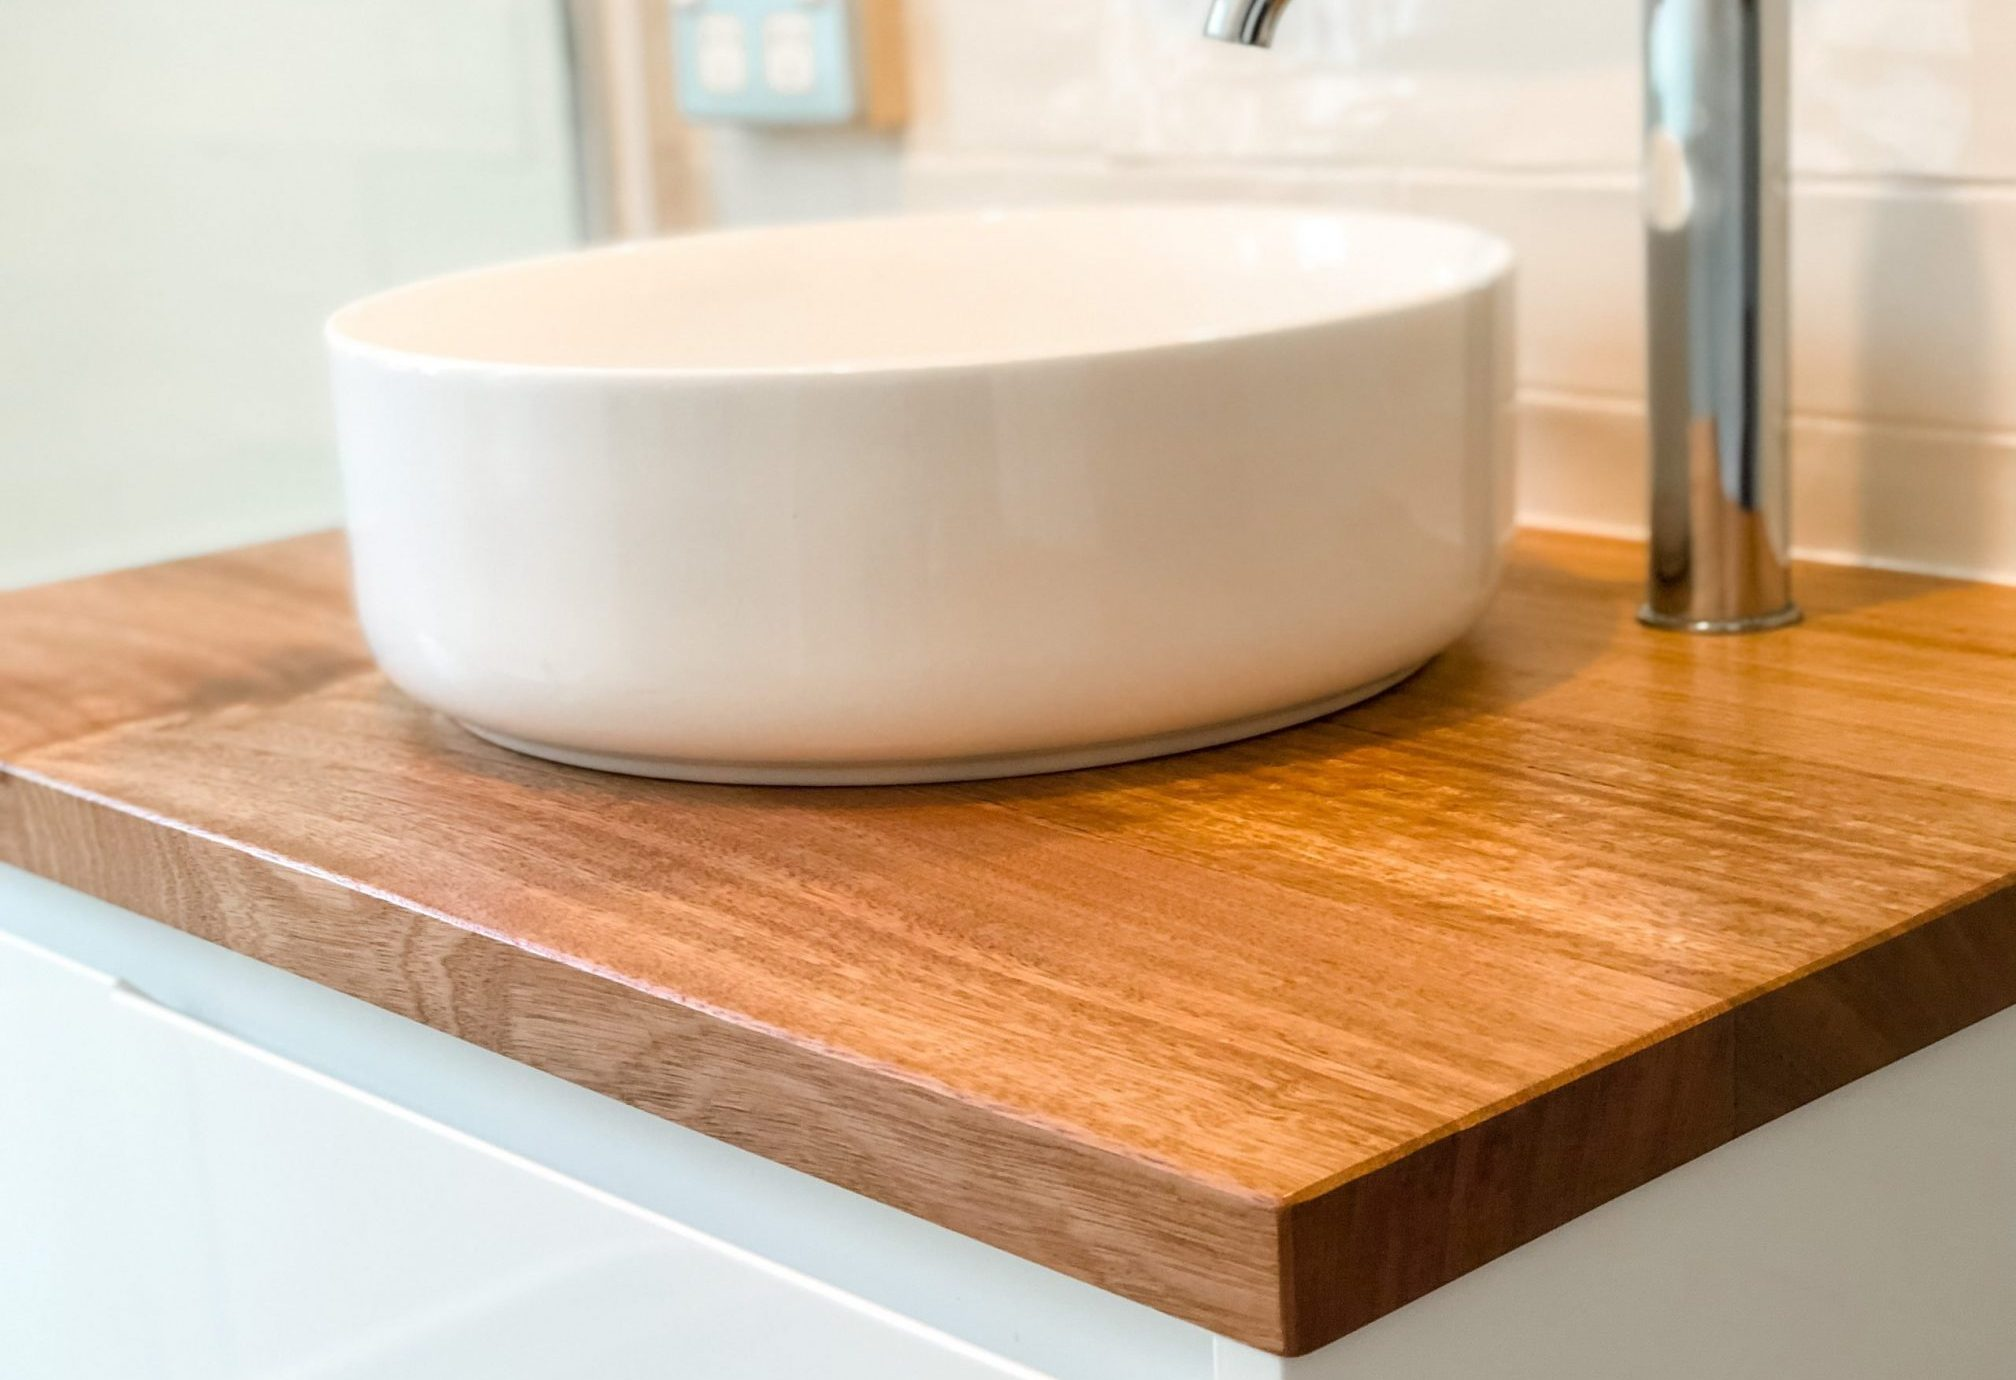 Timber bathroom vanity products